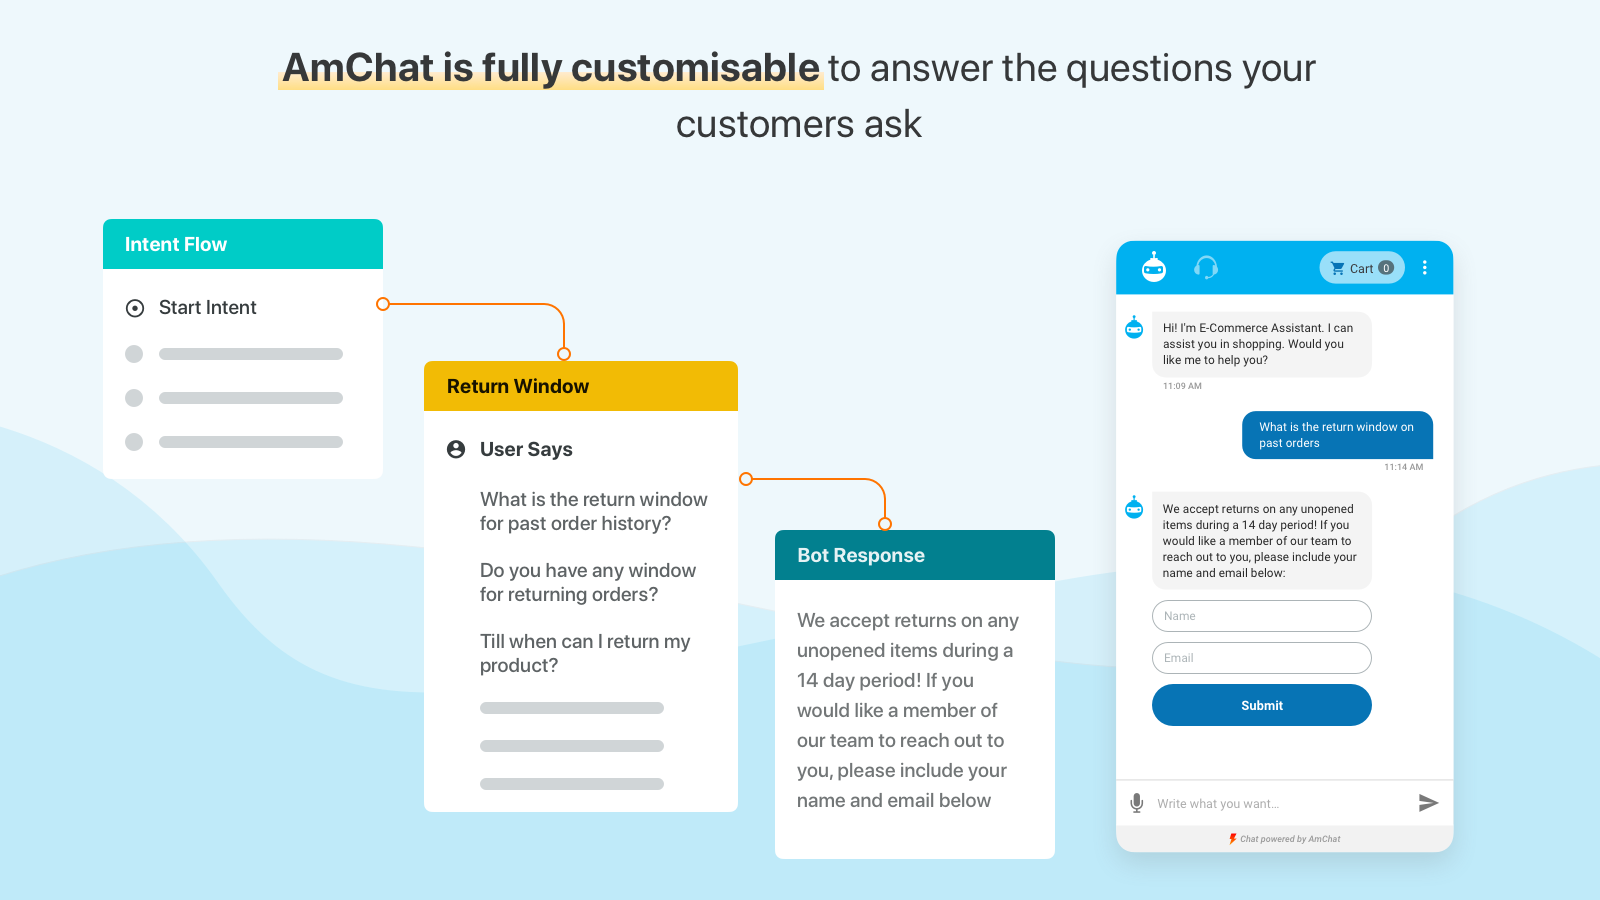 Amchat is customizable to answer the questions your customer ask